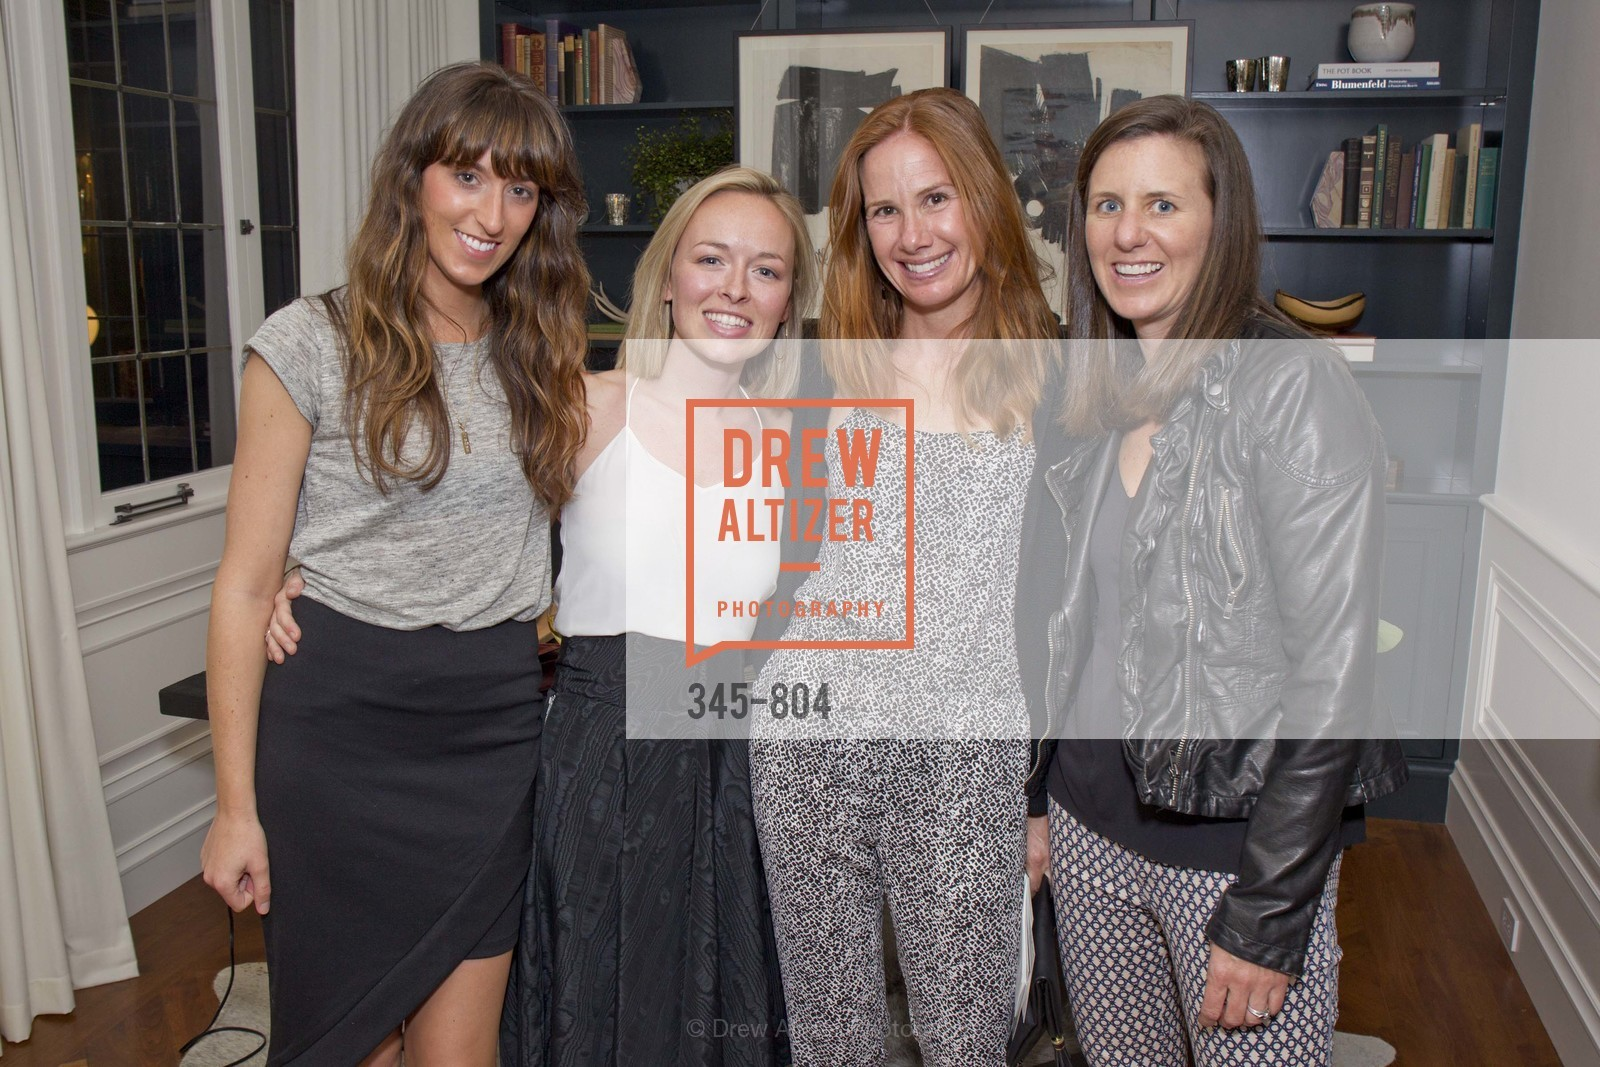 Chelsea Ledell, Brittany Haines, Jessica Donehower, Cindy Winship, San Francisco Decorator Showcase Opening Night Party, US, April 25th, 2015,Drew Altizer, Drew Altizer Photography, full-service event agency, private events, San Francisco photographer, photographer California